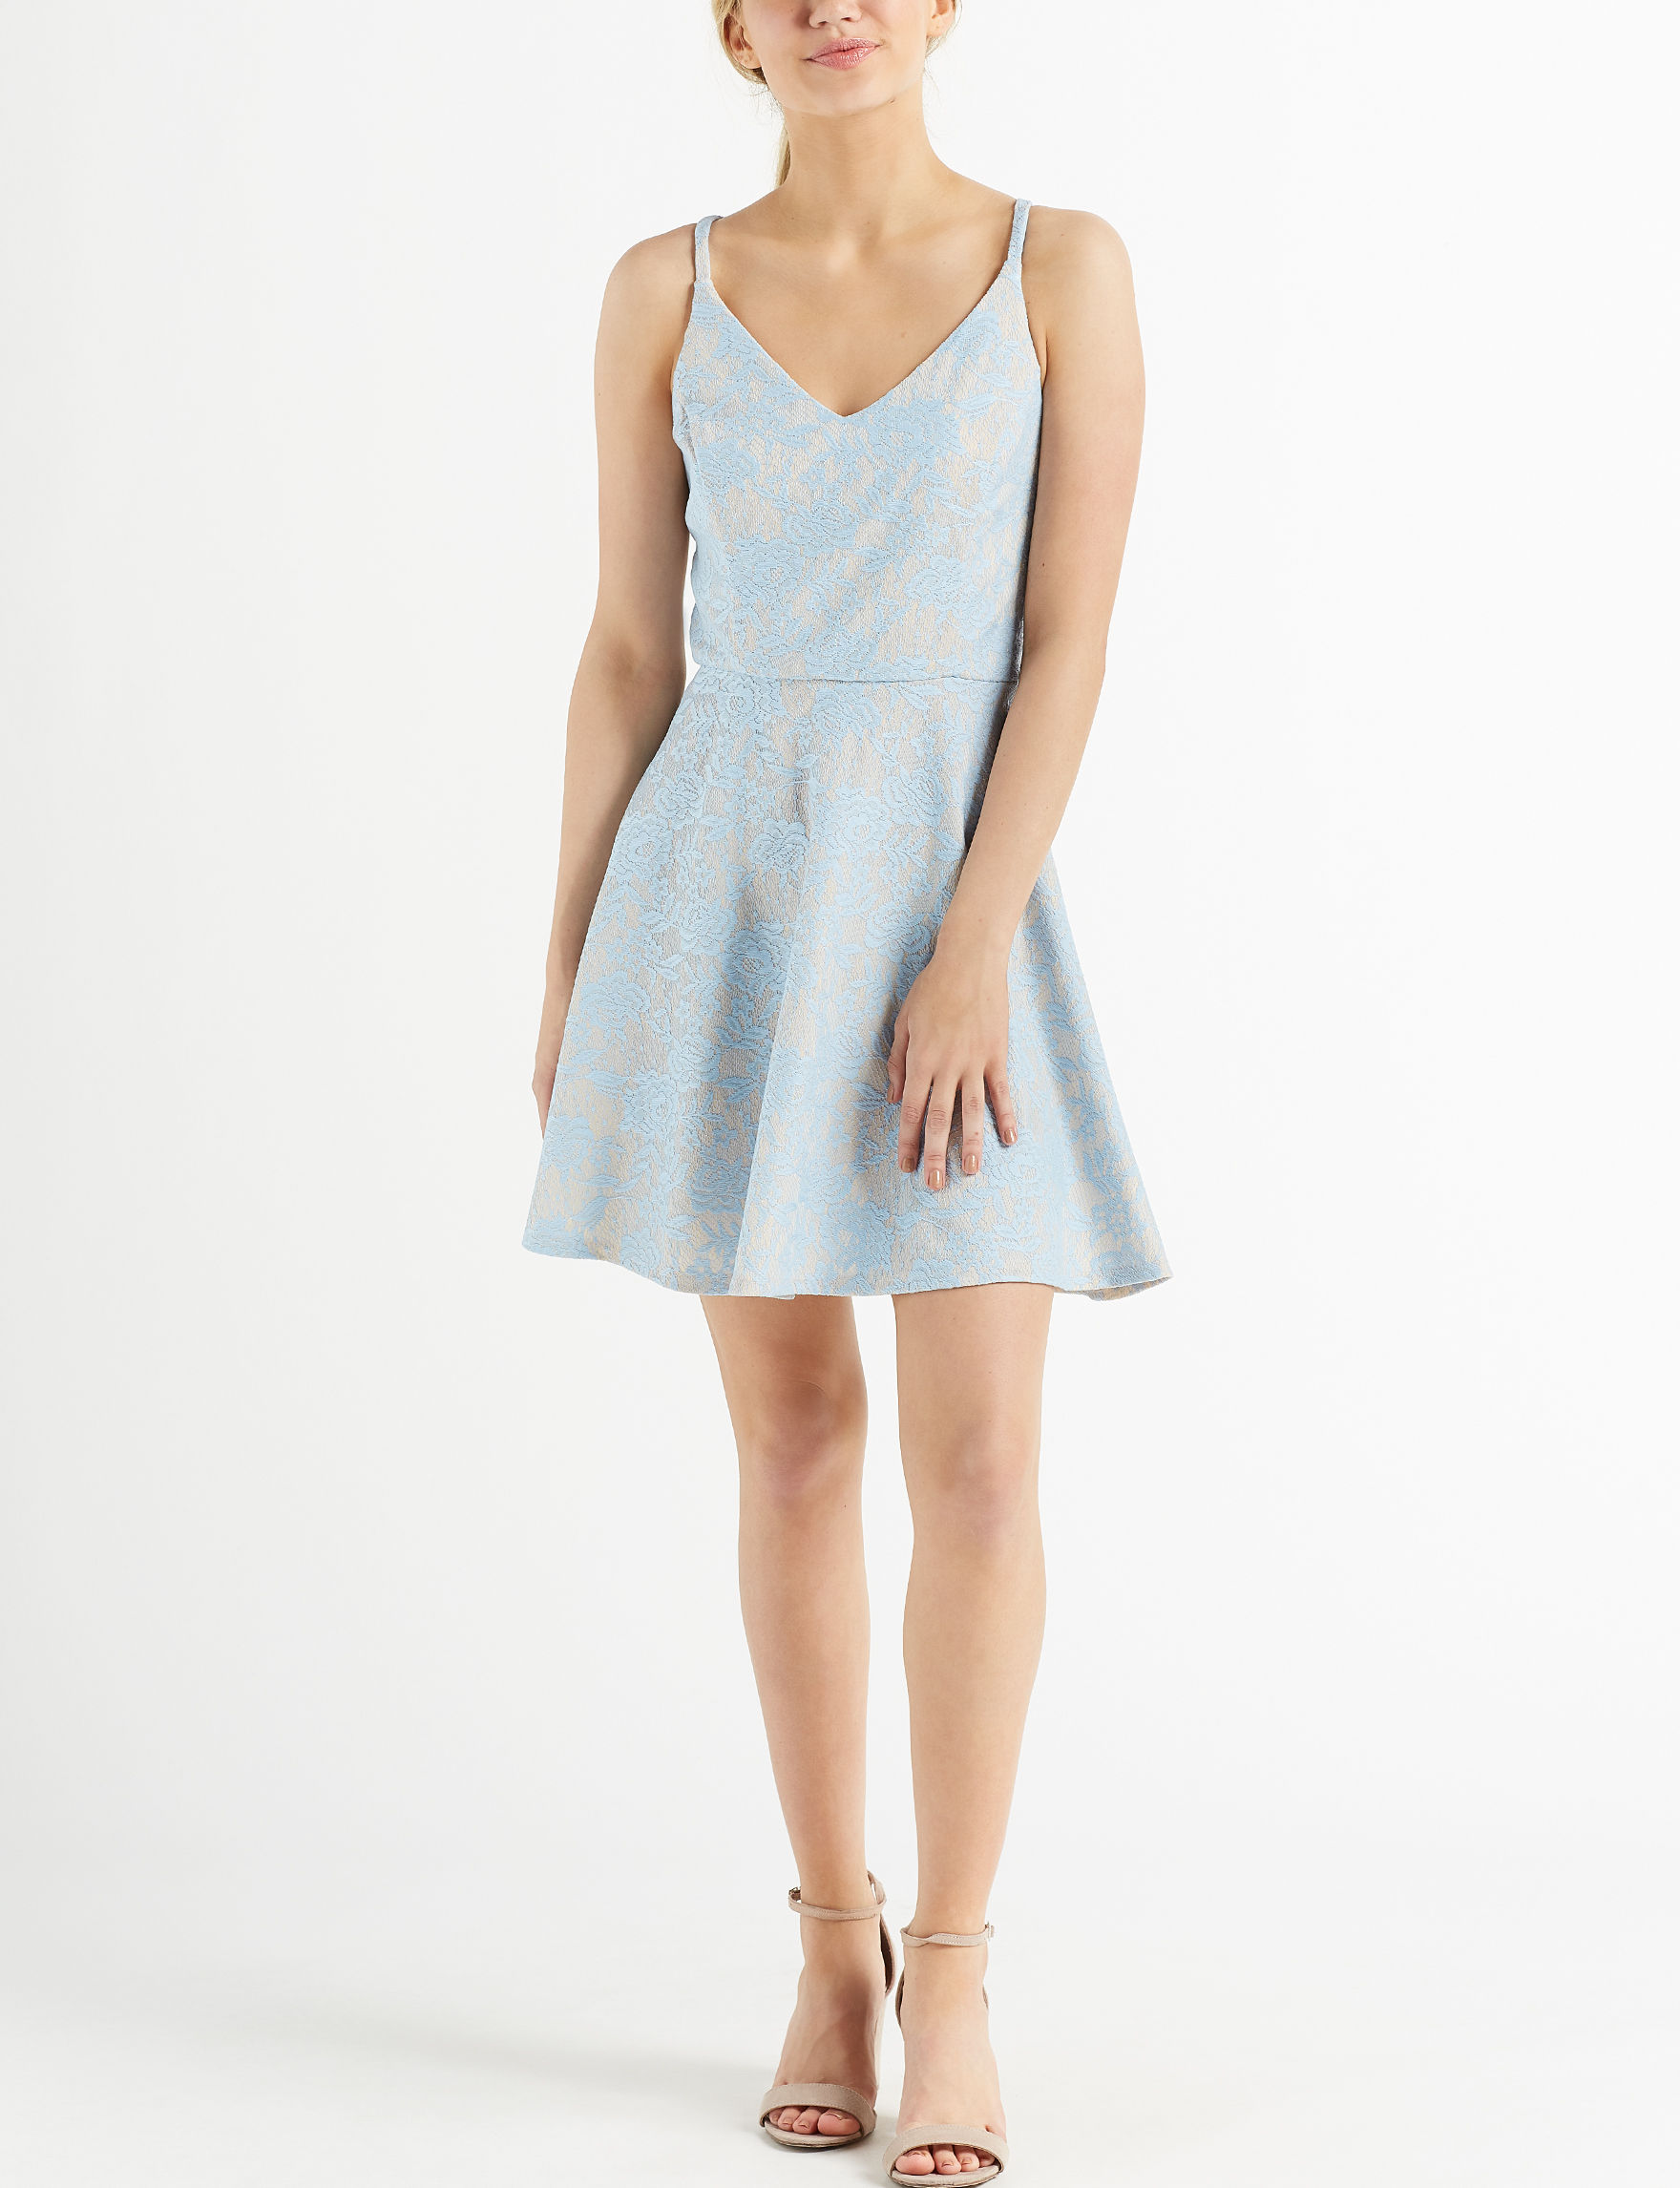 Speechless Blue / Beige Cocktail & Party Evening & Formal Fit & Flare Dresses